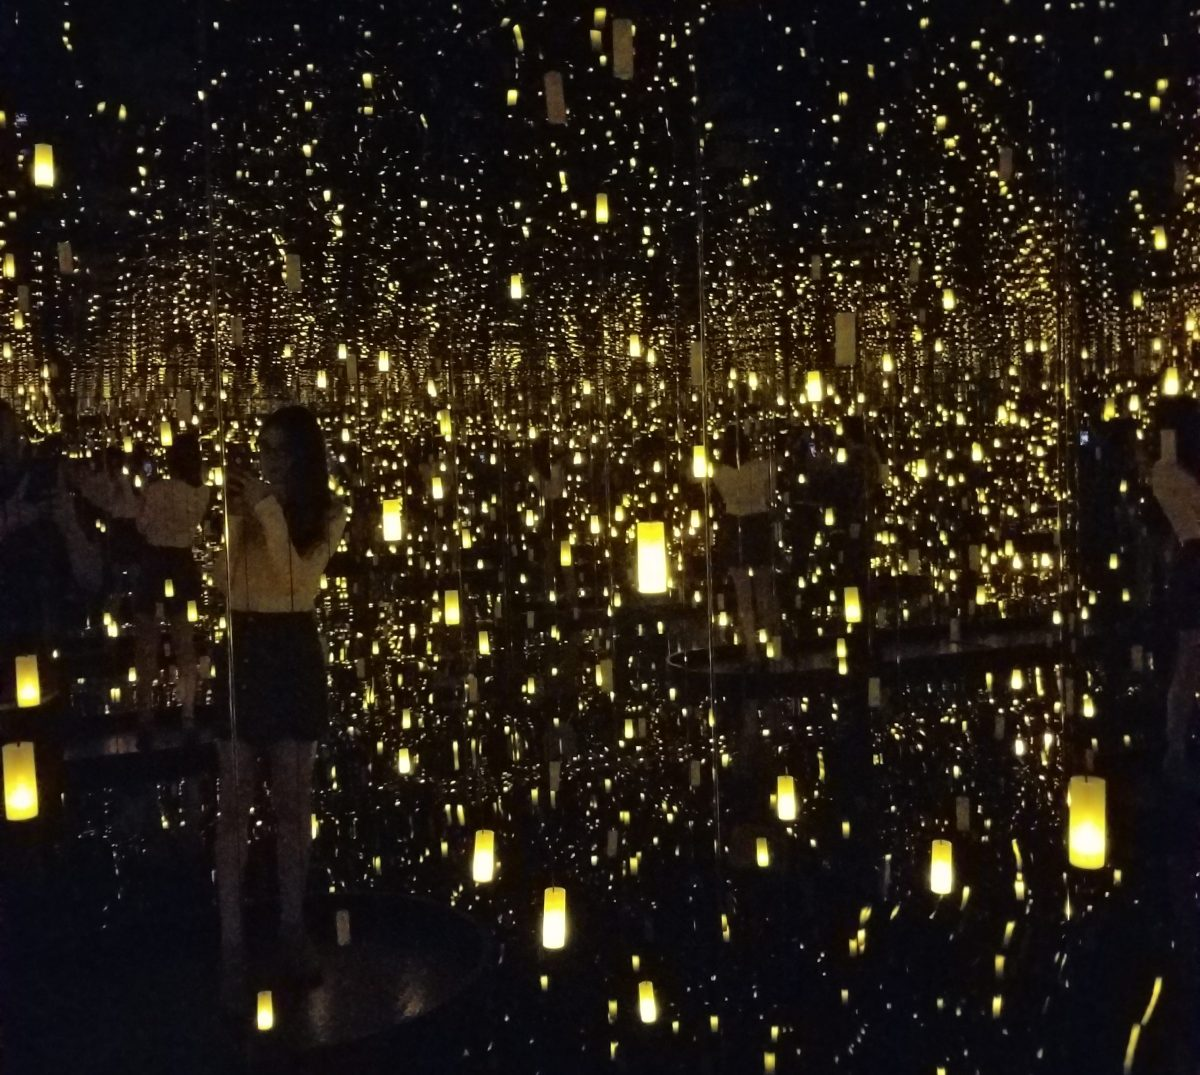 Seeing Yayoi Kusama's Infinity Mirrors at the High Museum of Art